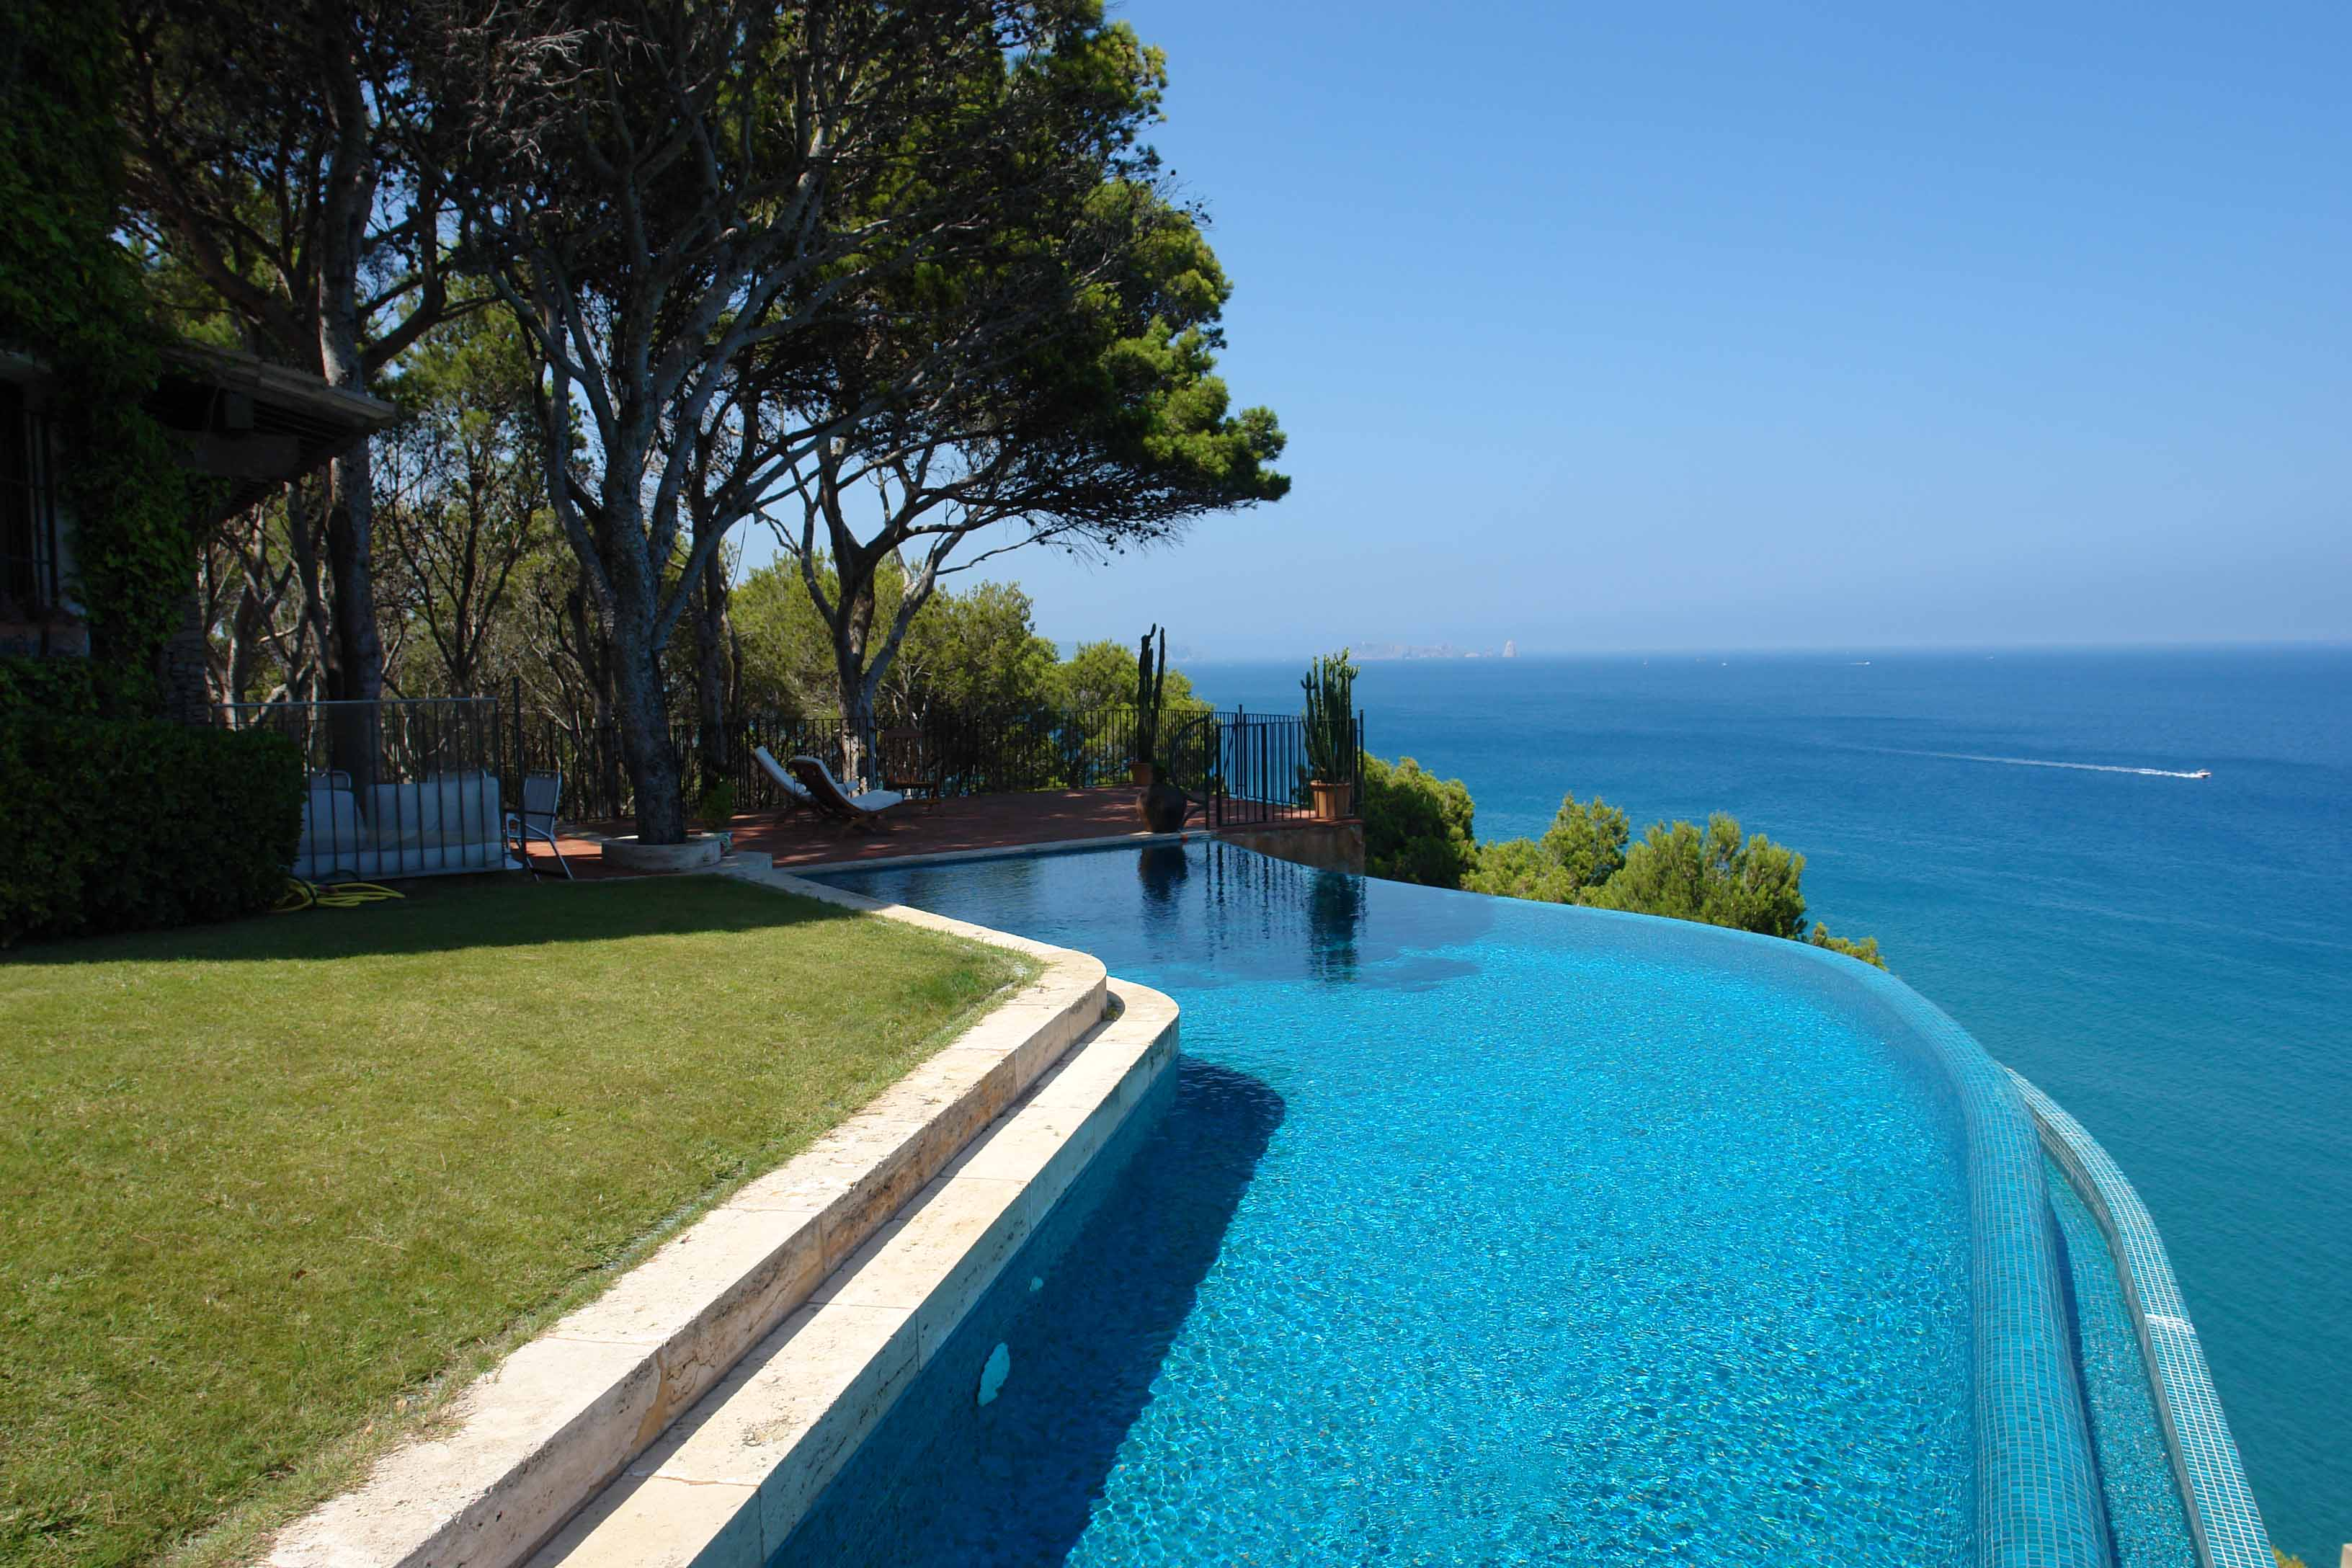 Single Family Home for Sale at A diamond in the rough in Sa Riera, Begur with views Begur, Costa Brava 17255 Spain